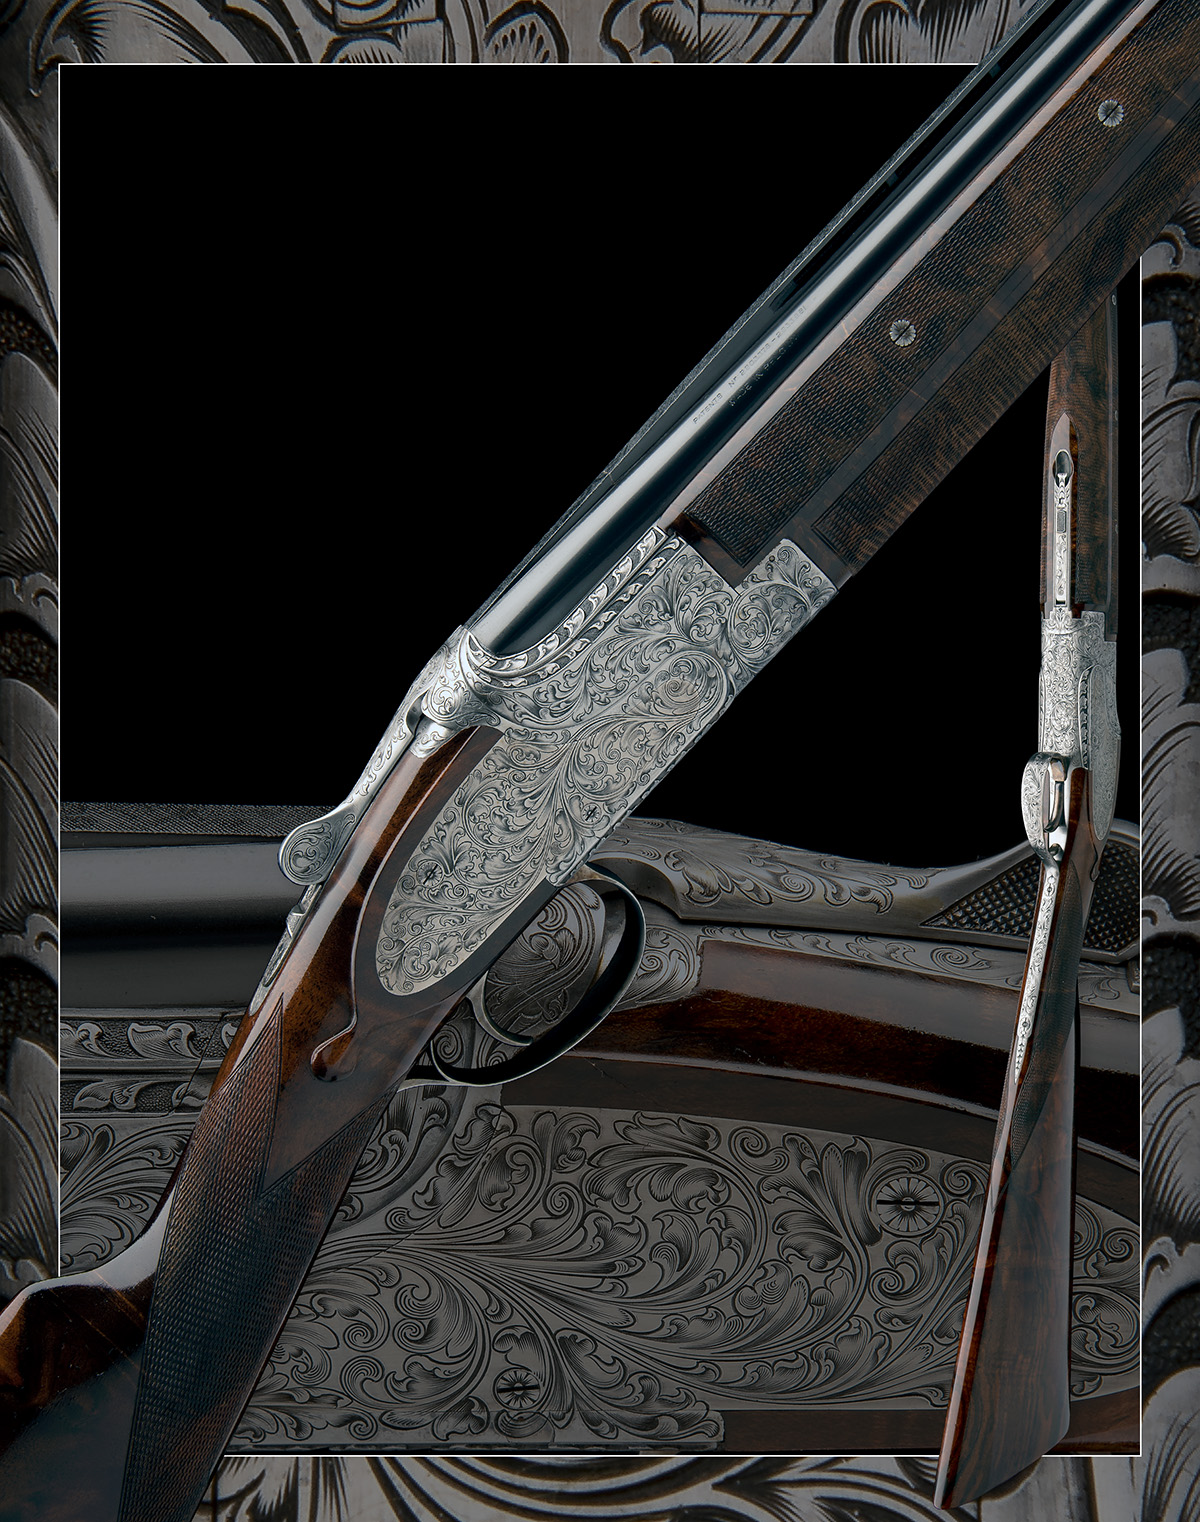 BROWNING ARMS CO. A CUSTOM JACOBY-ENGRAVED 20-BORE SIDEPLATED 'B25' SINGLE-TRIGGER OVER AND UNDER - Image 11 of 11